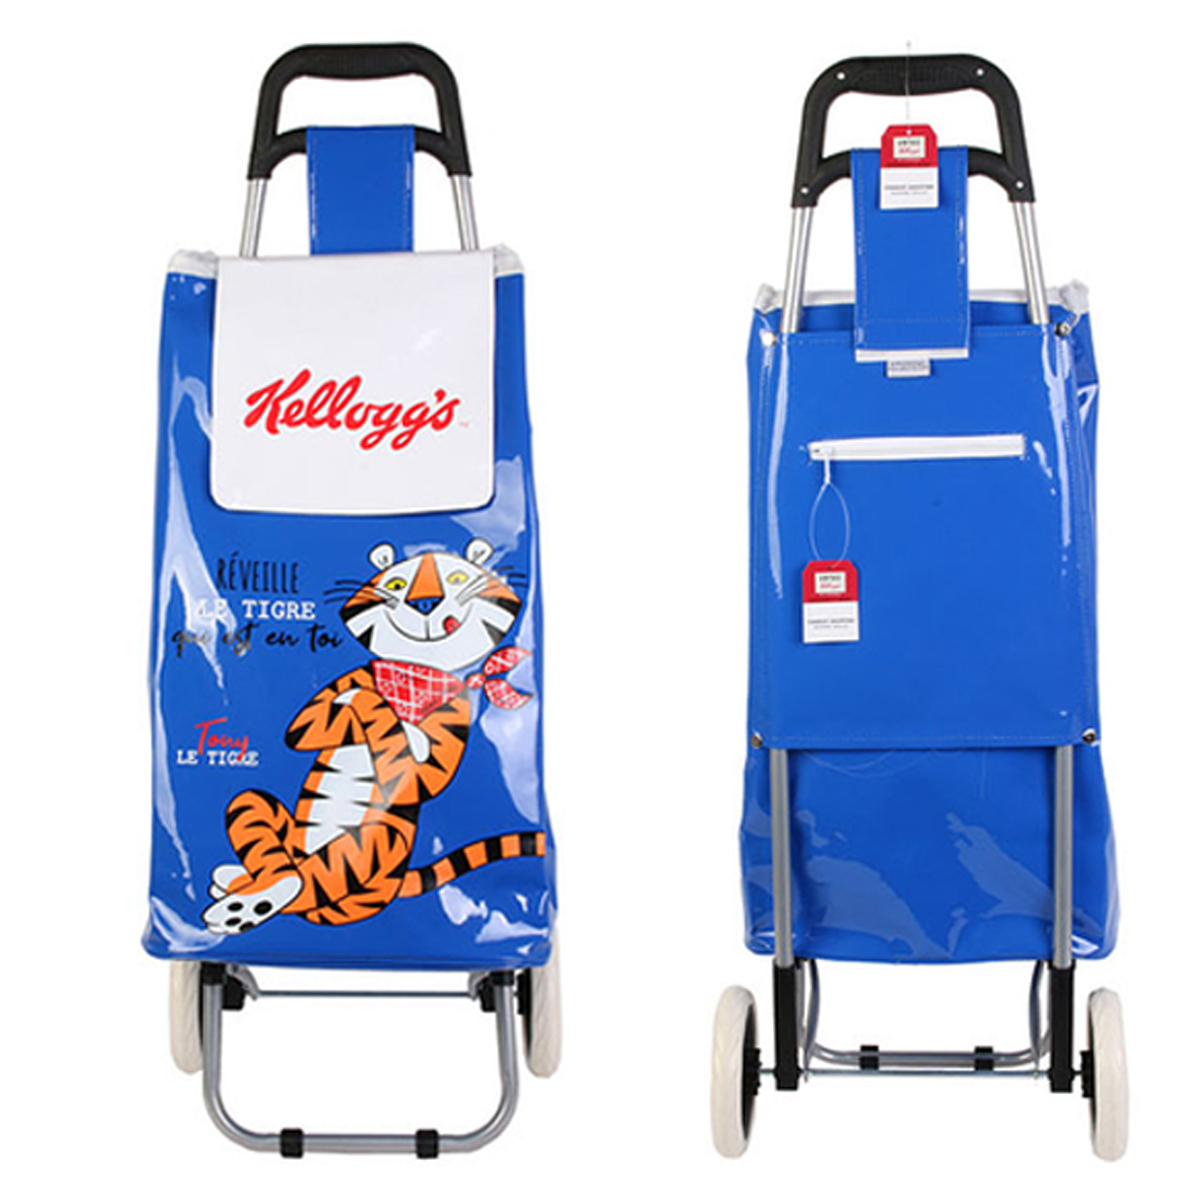 Caddy de course / Chariot shopping \'Kellogg\'s\' bleu - 95x36x31 cm - [A1235]